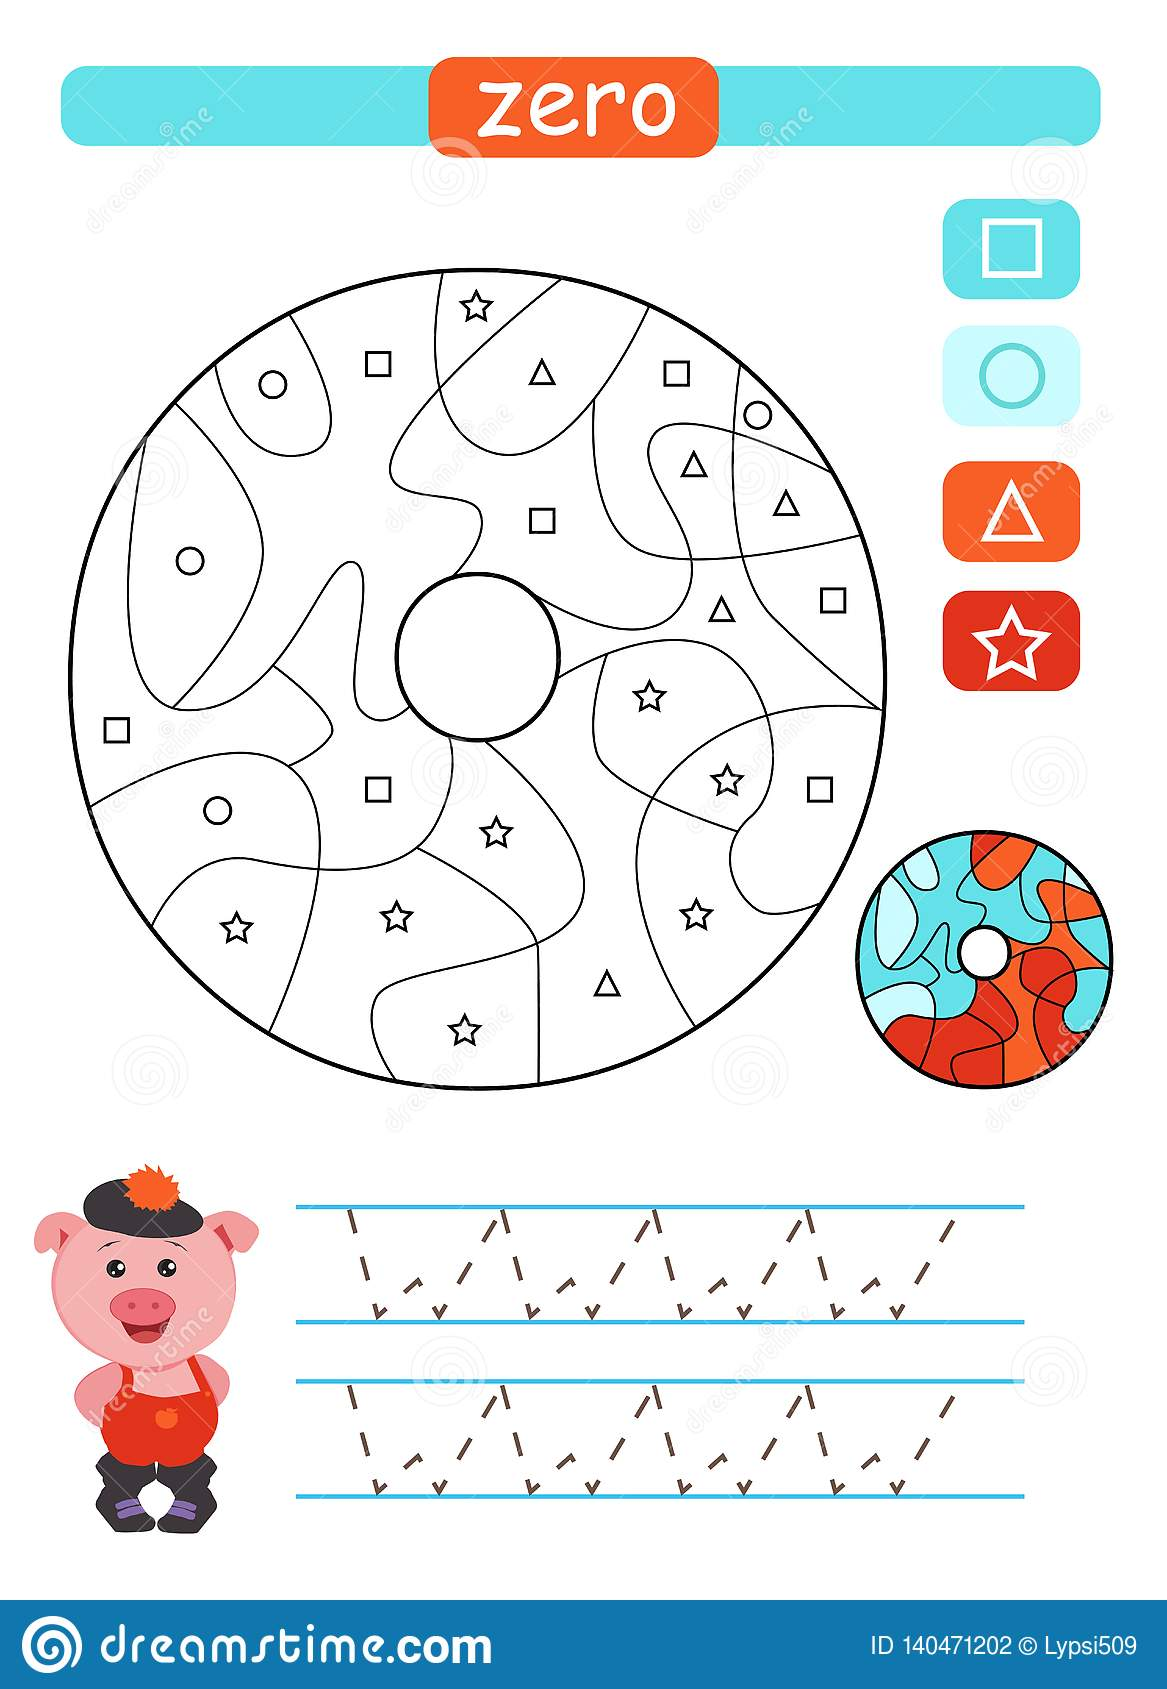 Coloring Printable Worksheet For Kindergarten And